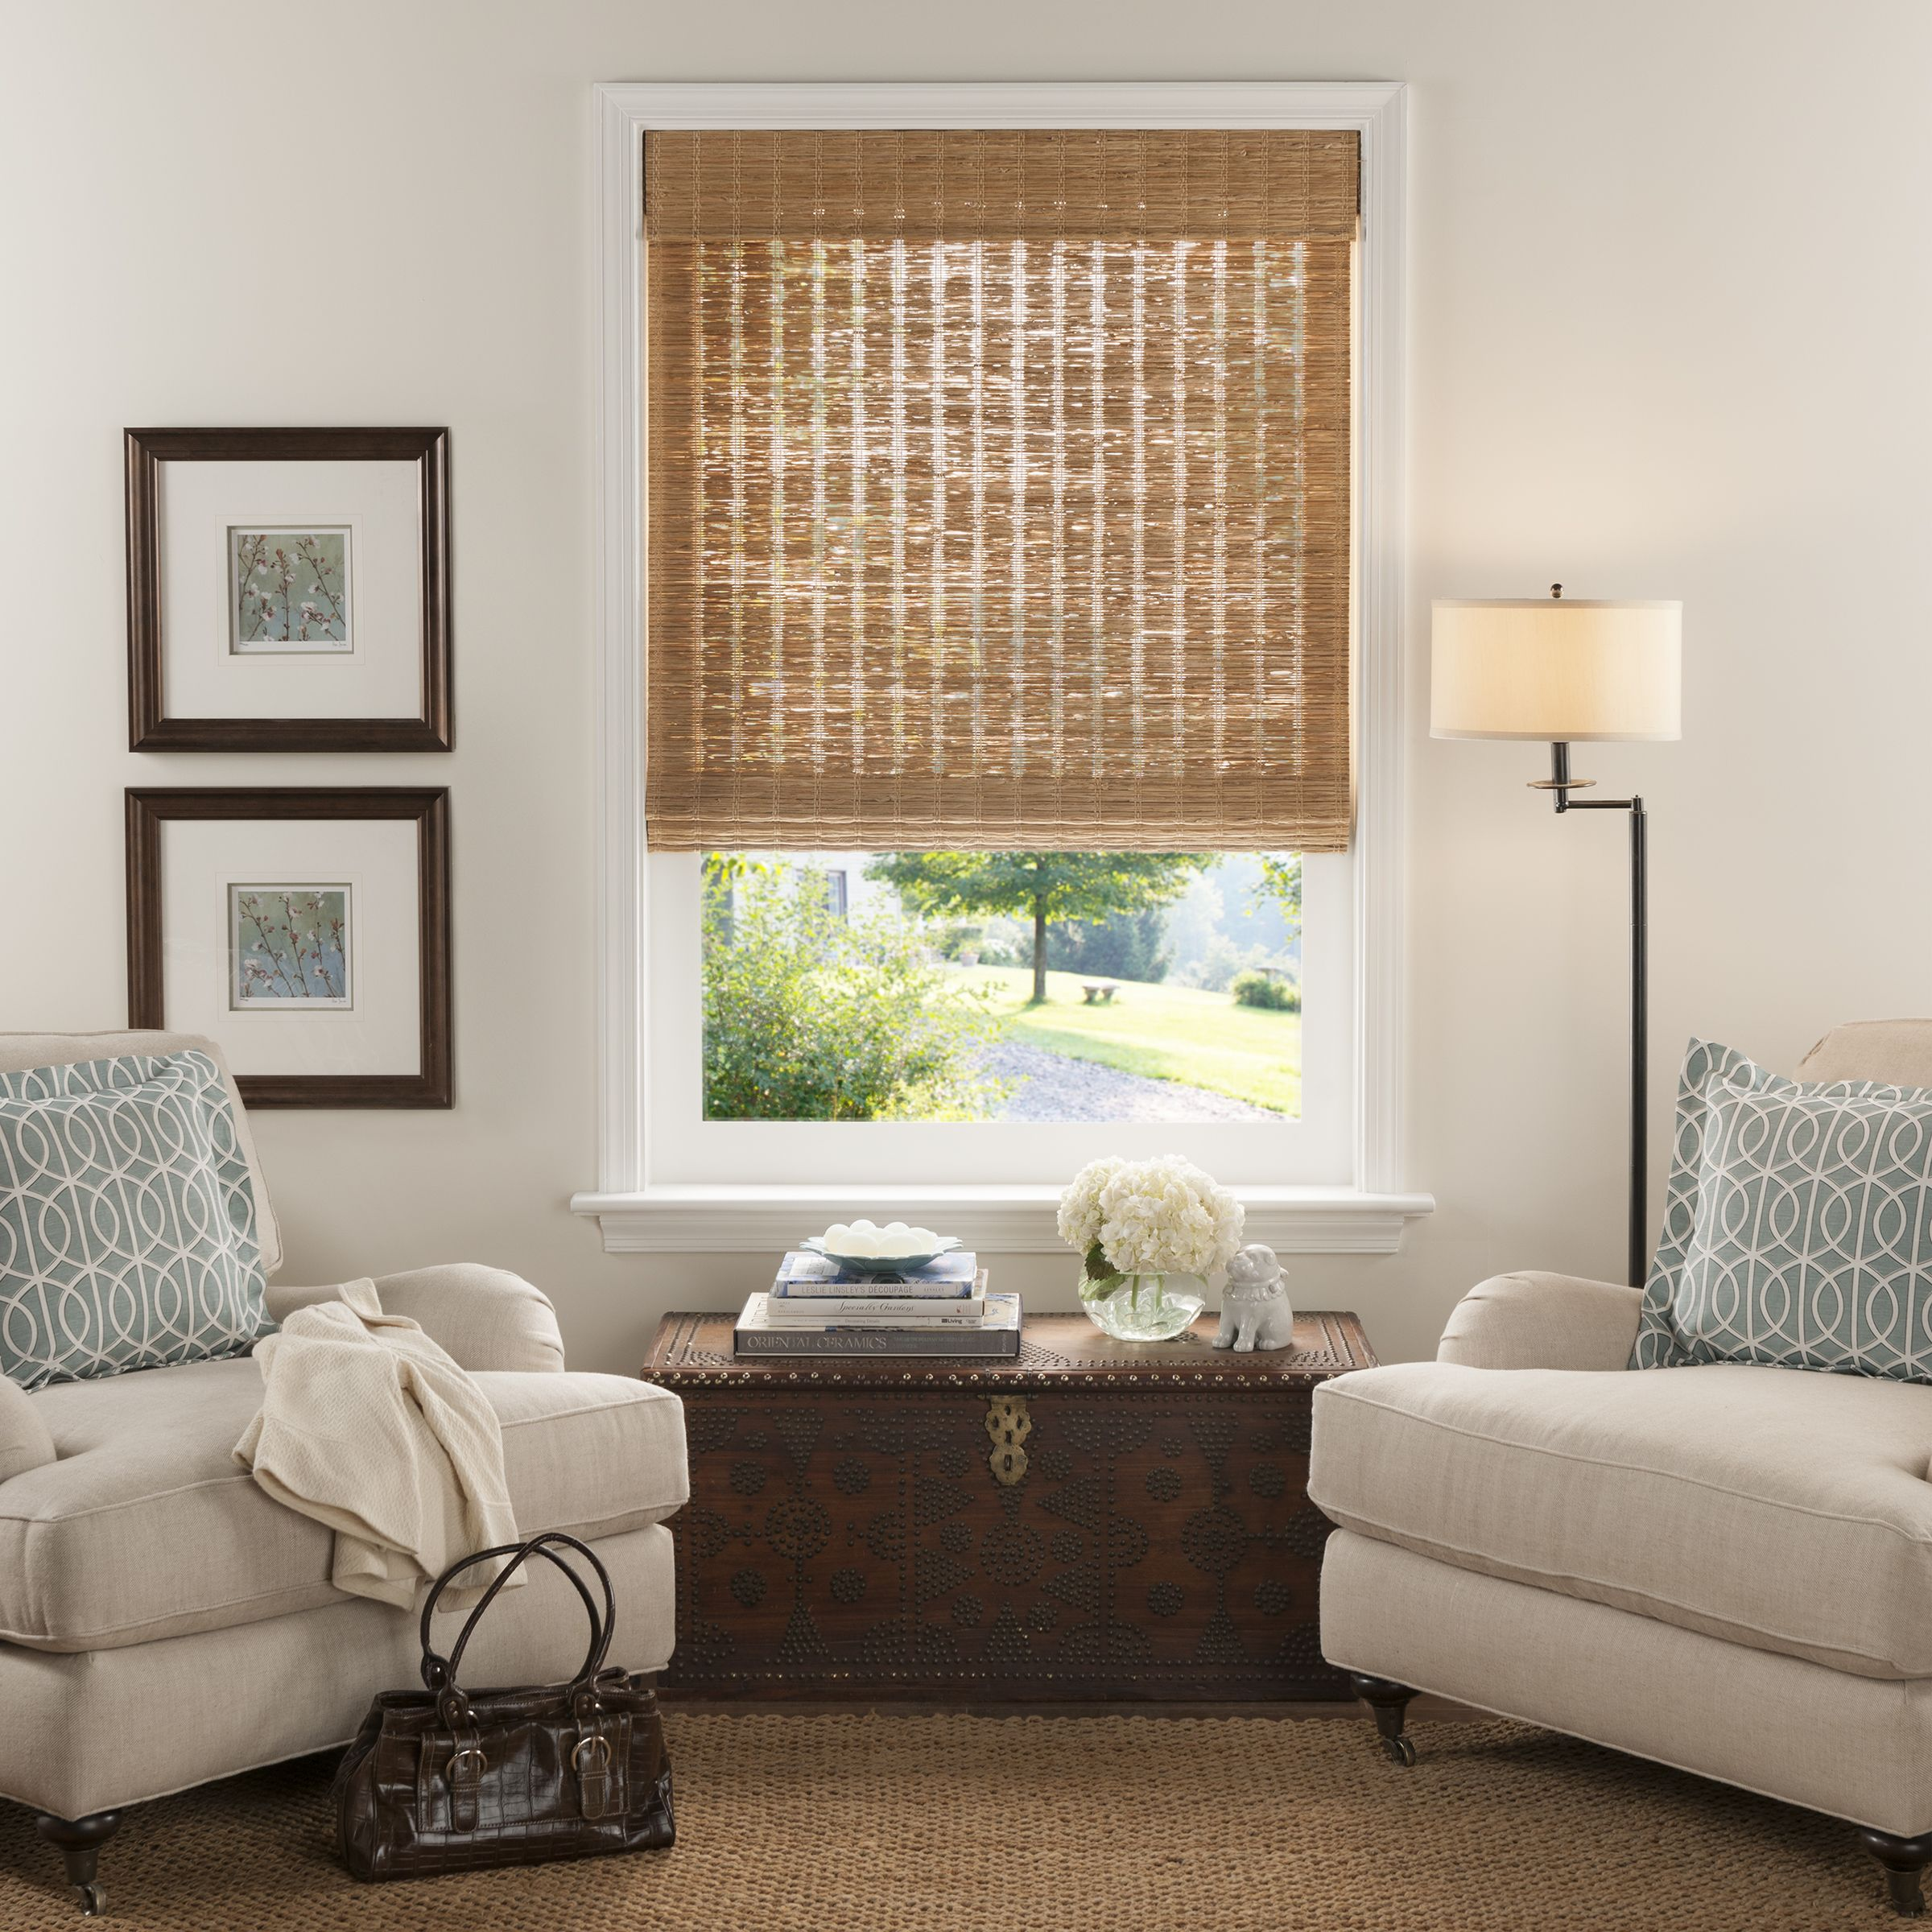 How To Buy Blinds And Shades Window Blinds And Shades Shopping Tips